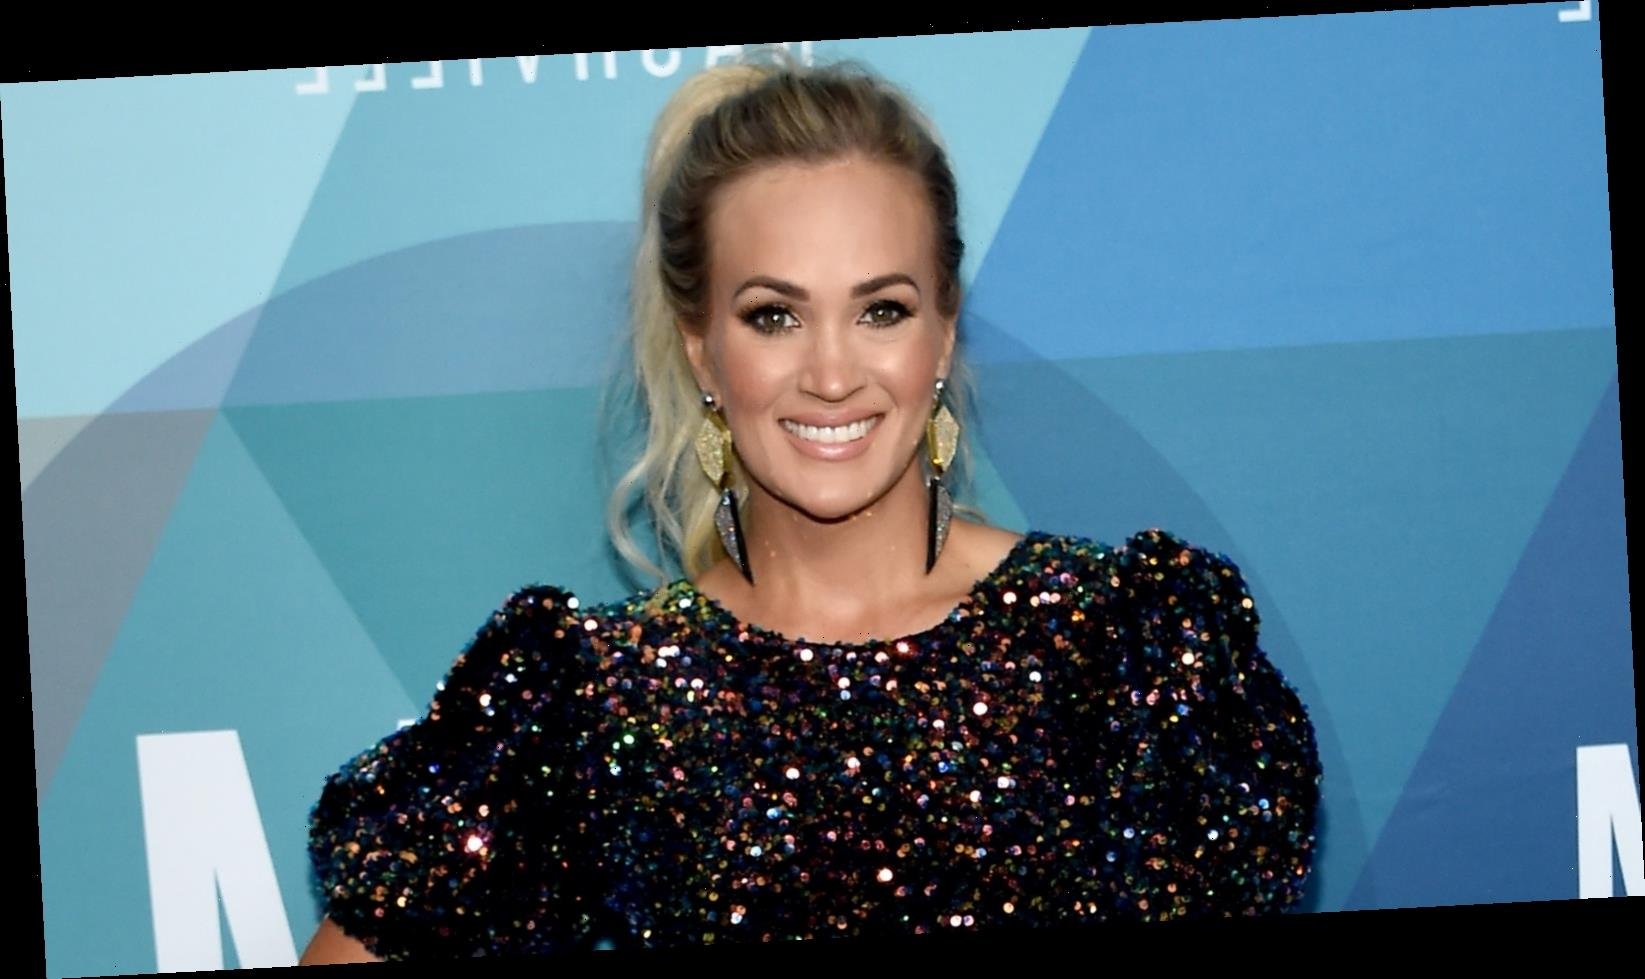 Carrie Underwood has completely transformed since American Idol